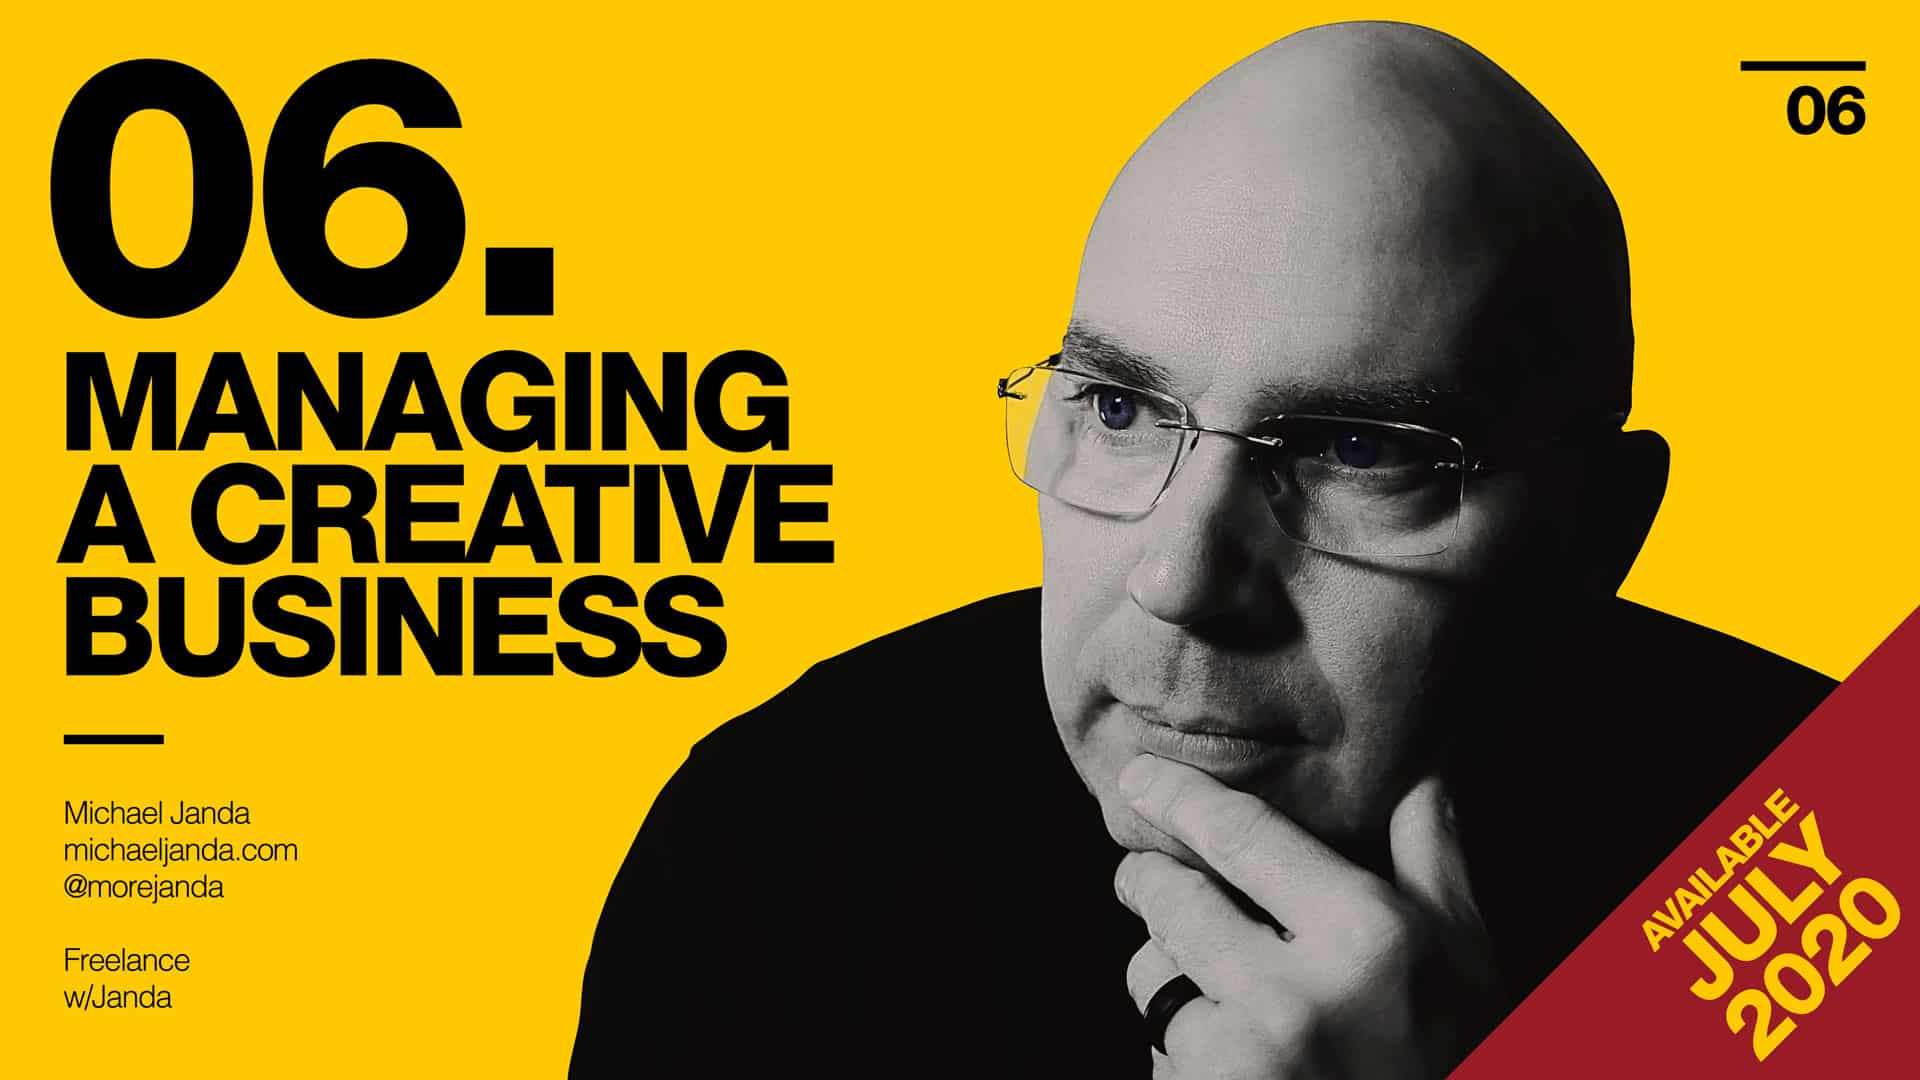 Freelance with Janda - Managing a Creative Business